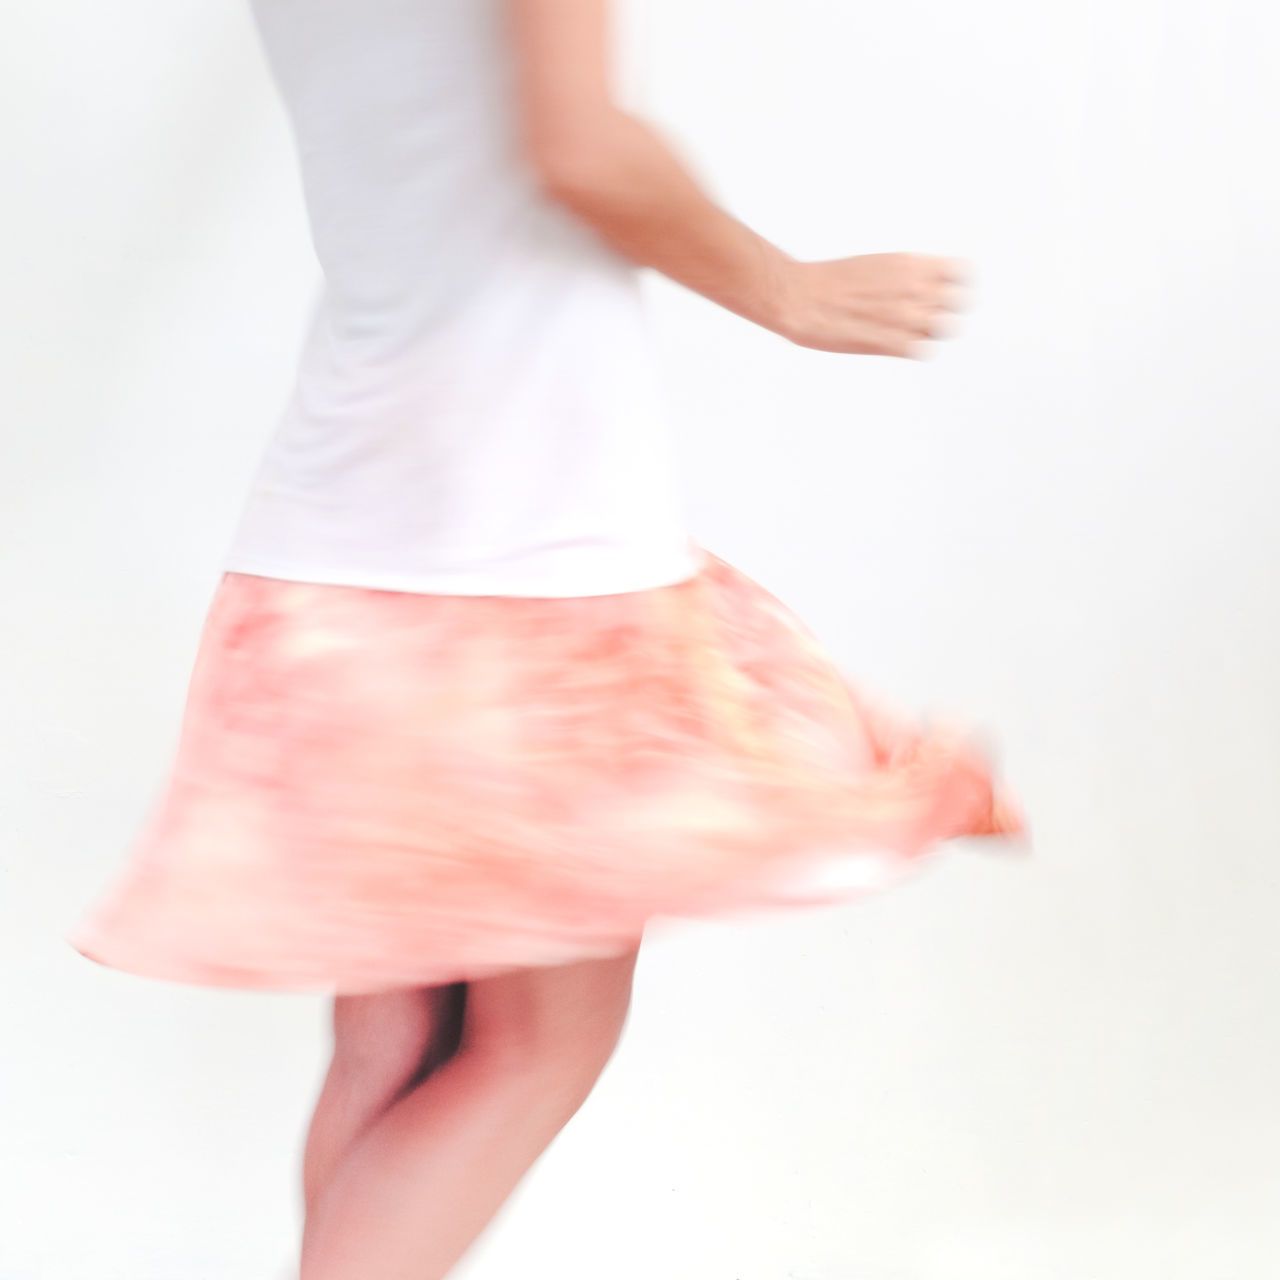 Dancing Dancing Girl Dynamic Human Body Part Human Leg Indoors  Lifestyles Low Section Movement Photography One Person Real People White Background Women